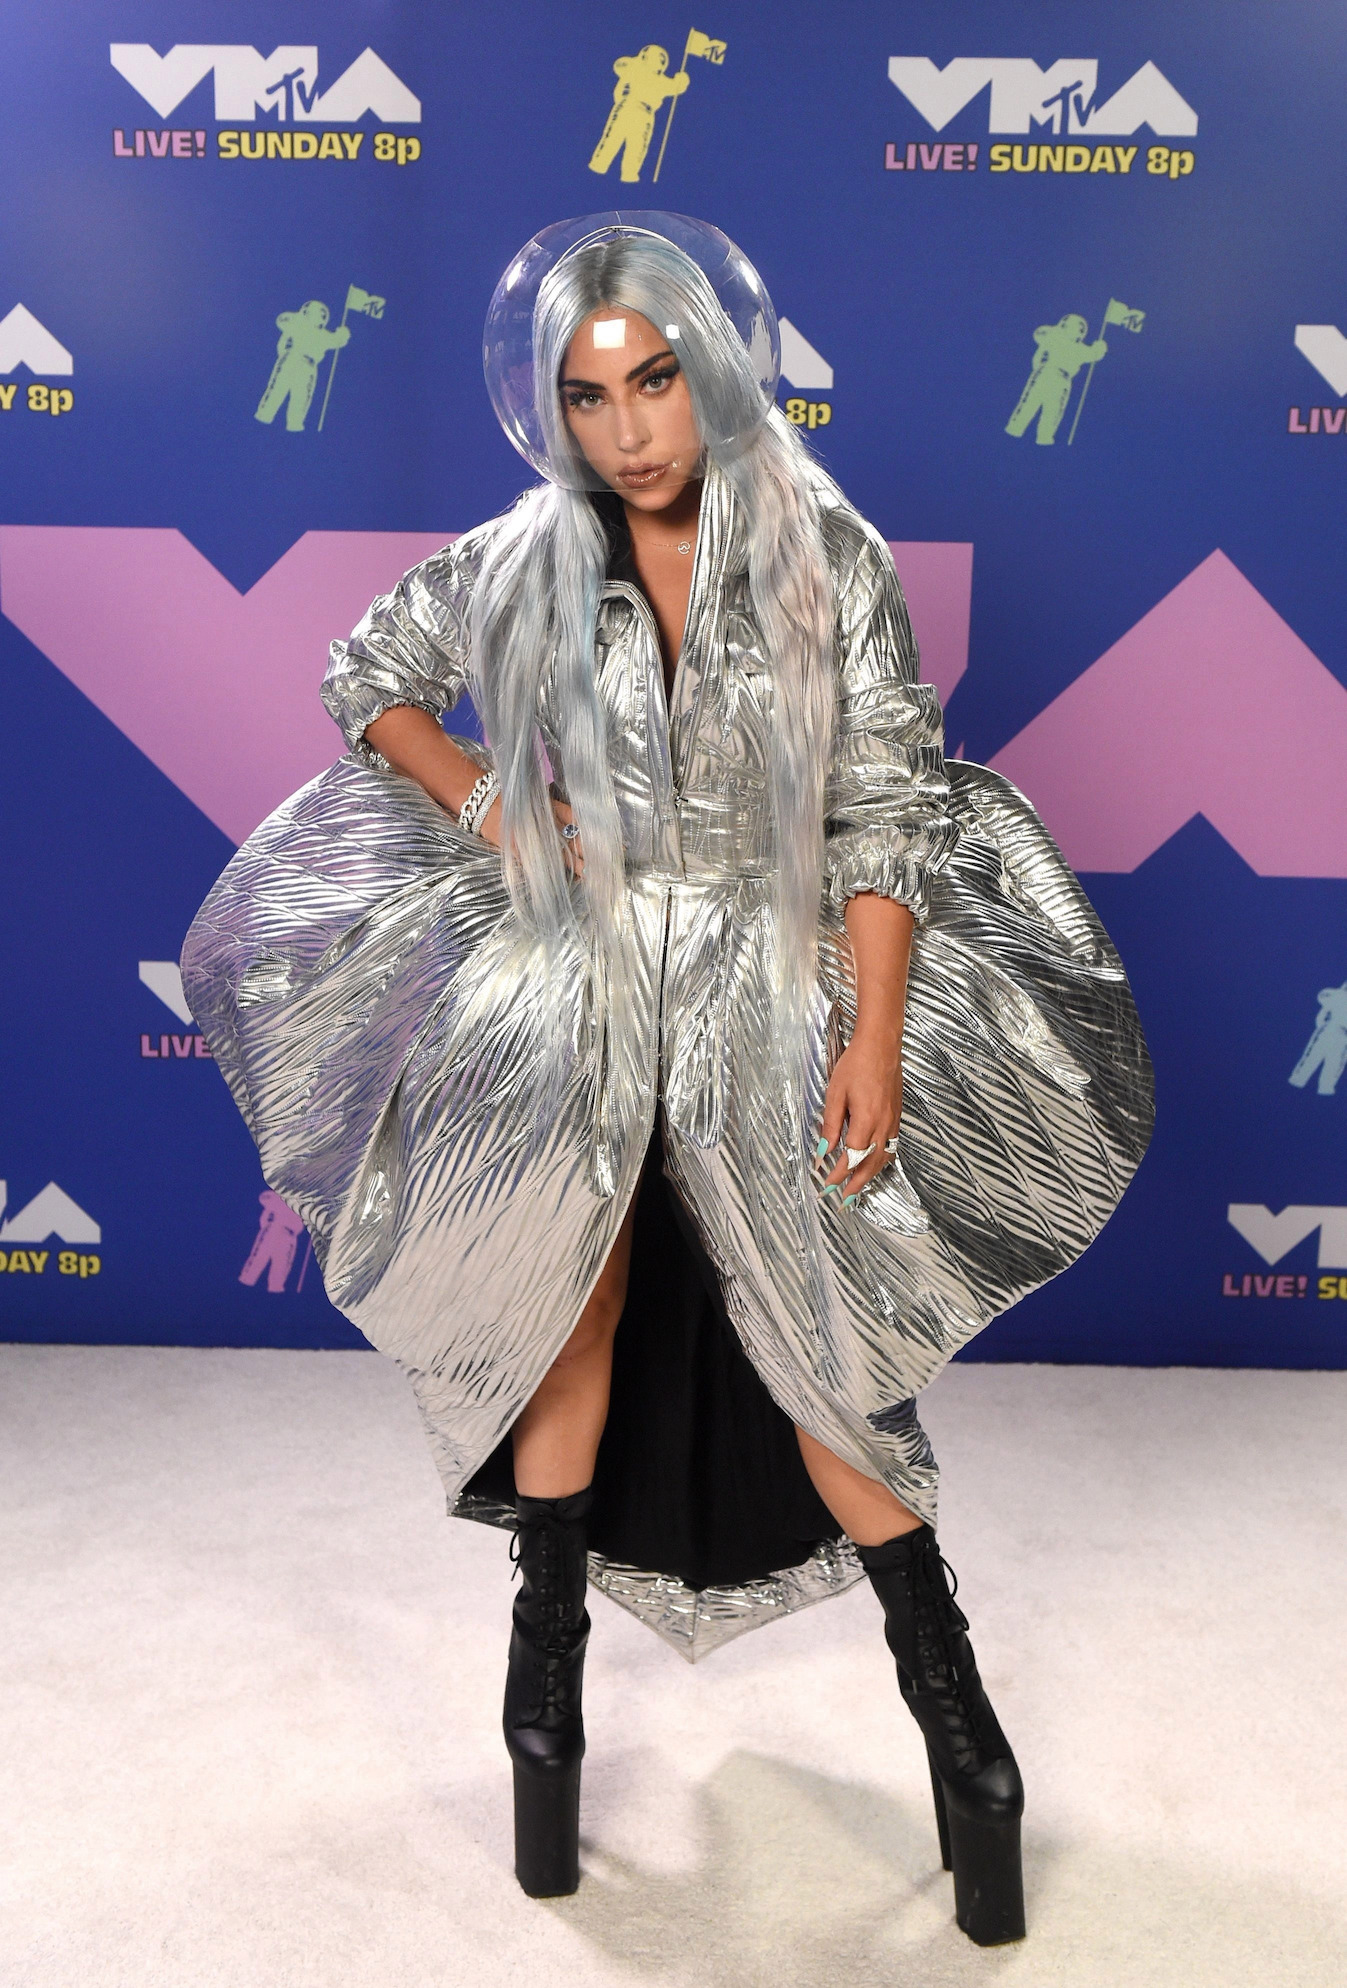 At the 2020 VMAs red carpet, Lady Gaga wore a silver dress by Area and a custom helmet by Conrad by Conrad. (Photo credit: Getty Images)